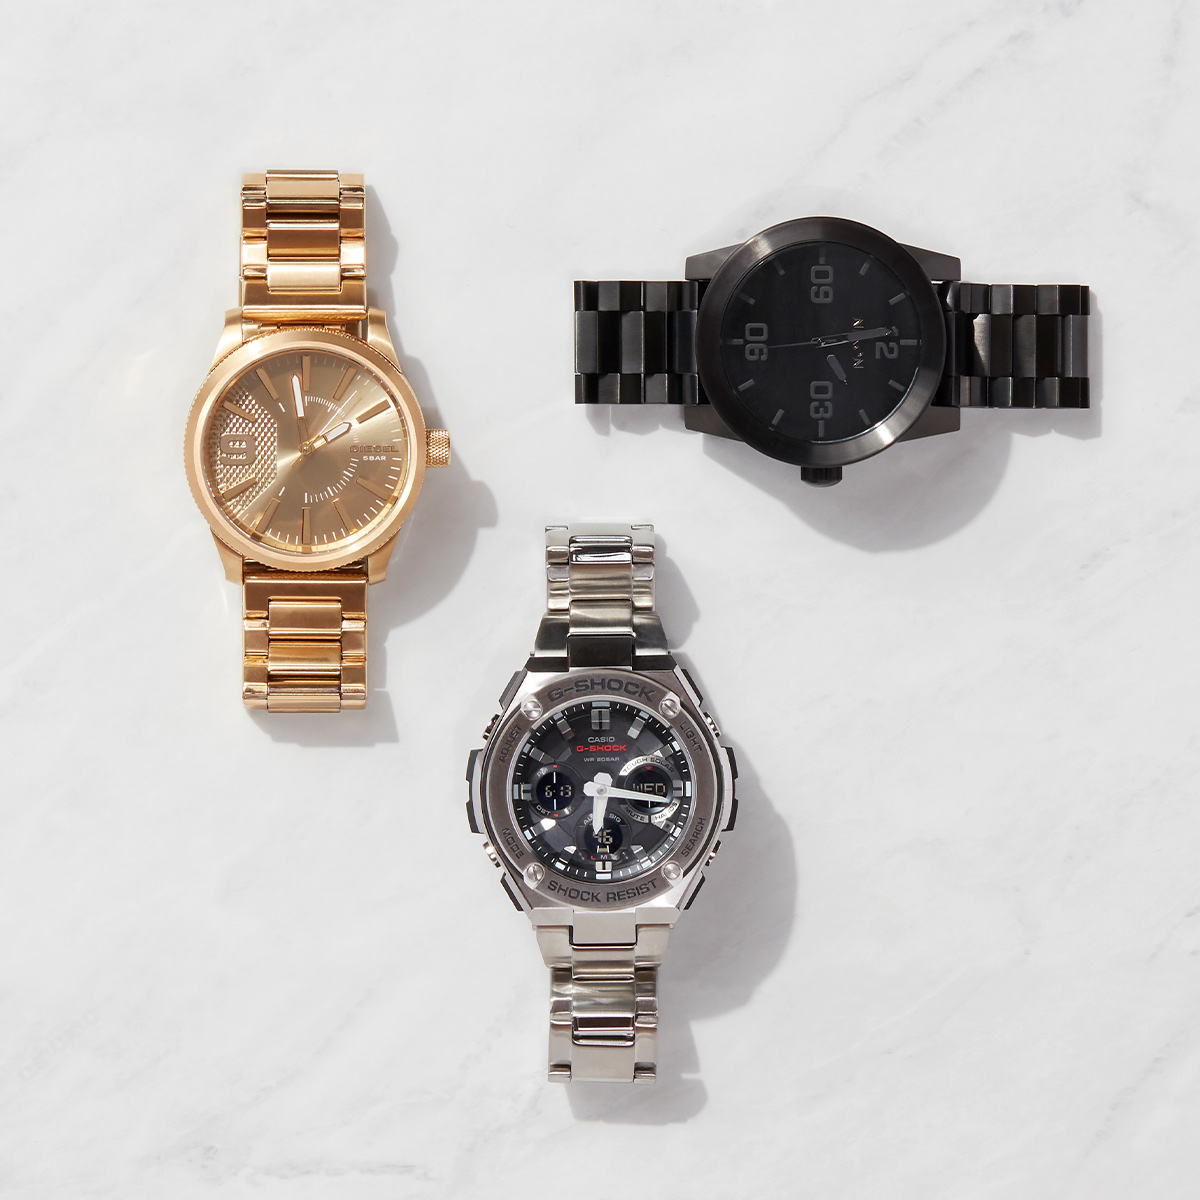 Three metallic bracelet watches laid flat on a marble background.